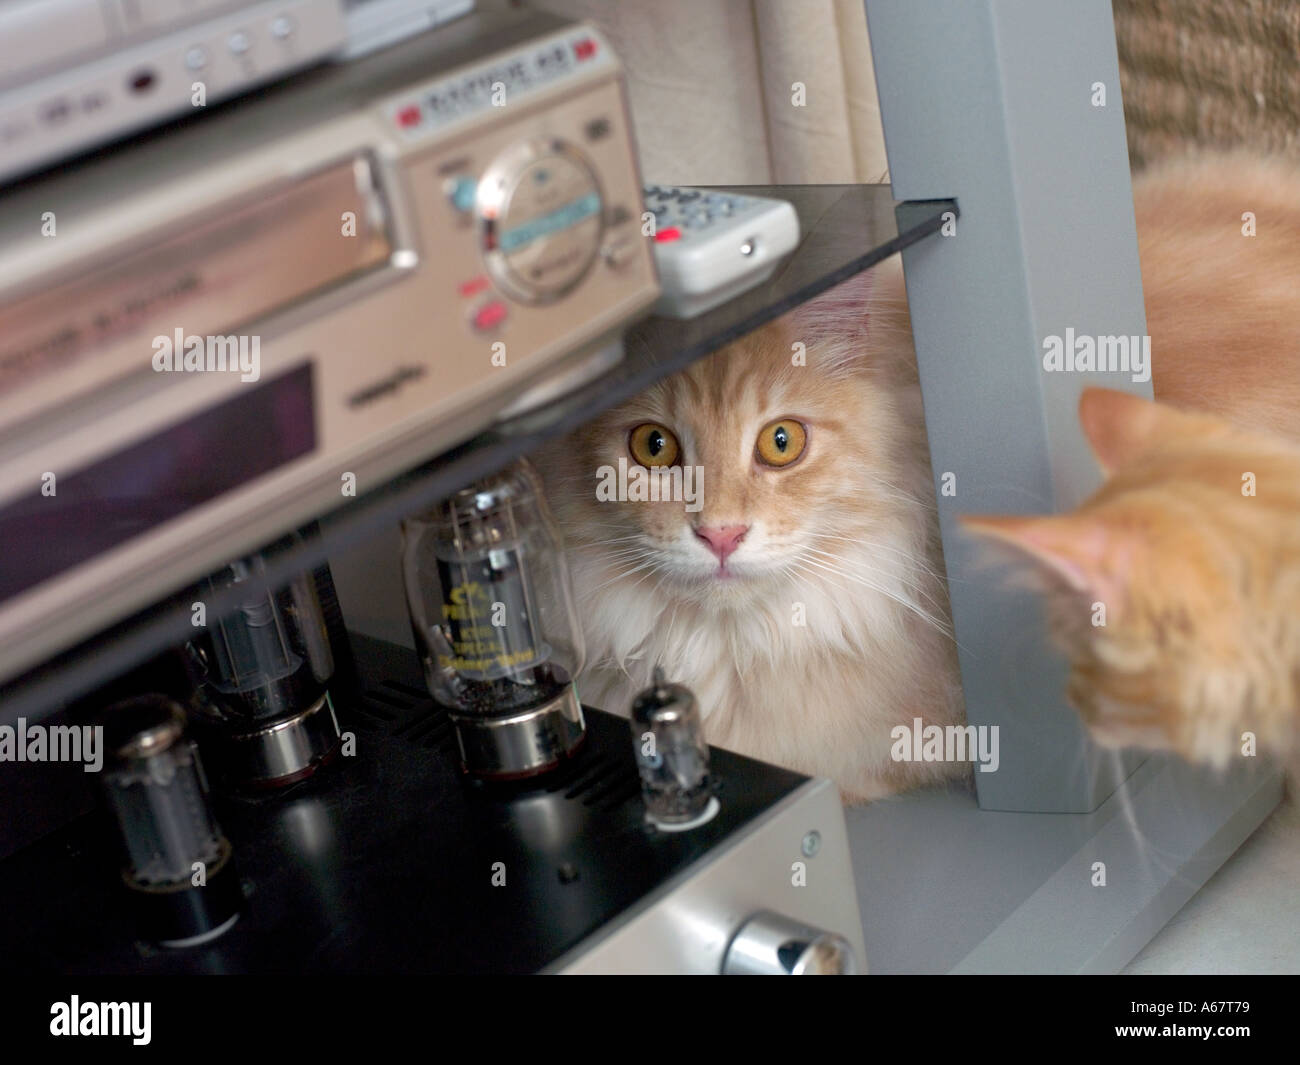 ginger cat peeking out from behind VCR player - Stock Image